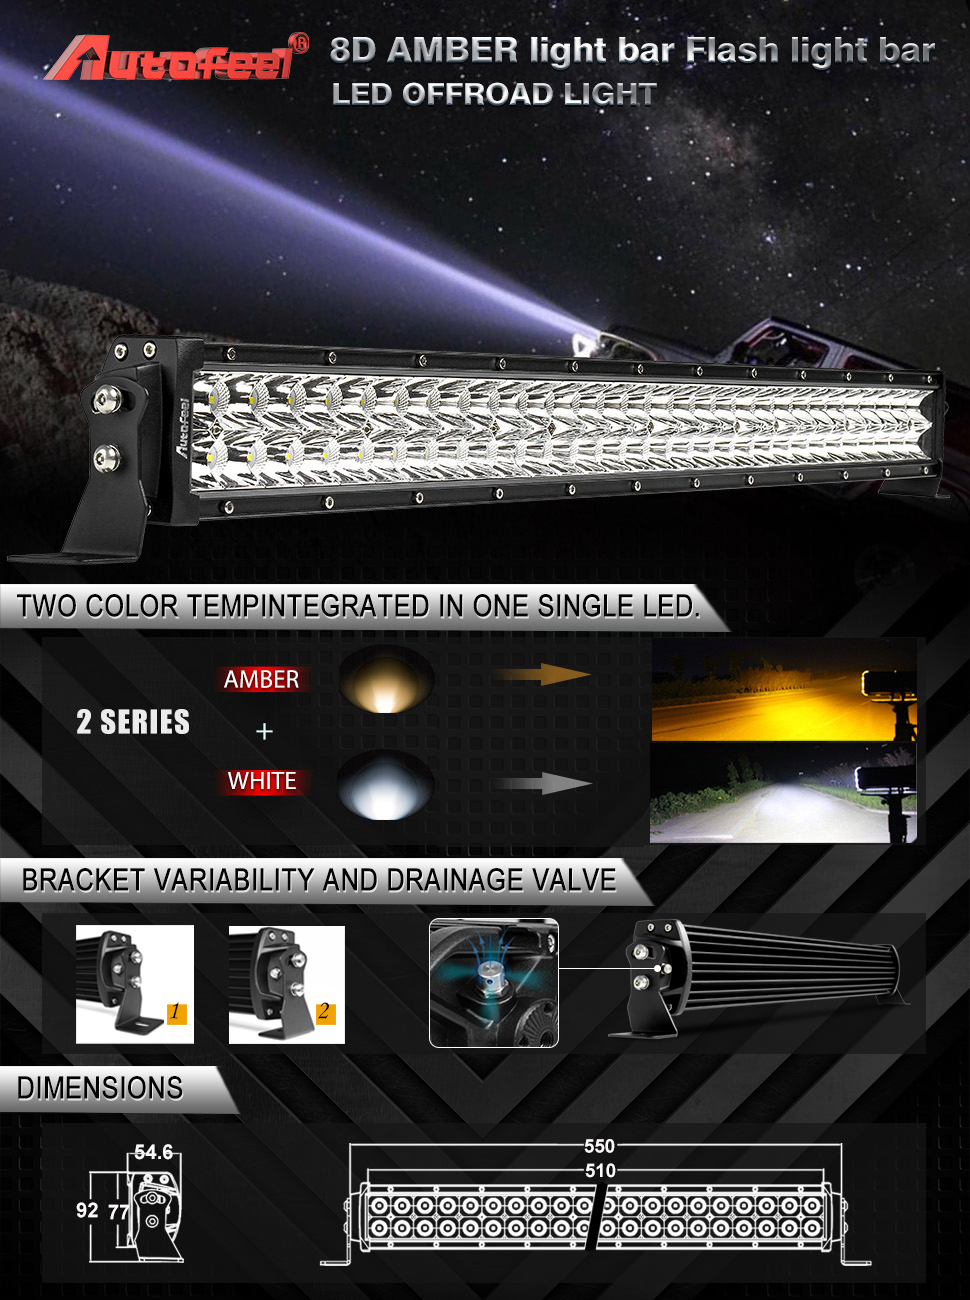 Led Light Bar Curved Autofeel 32 Inch 150w Driving Wiring No Relay Is The One Of Leading Auto Lamp Brands To Make Sure You Can Get Best Product We Strive Deliver Merchandise Reaching Beyond Guests